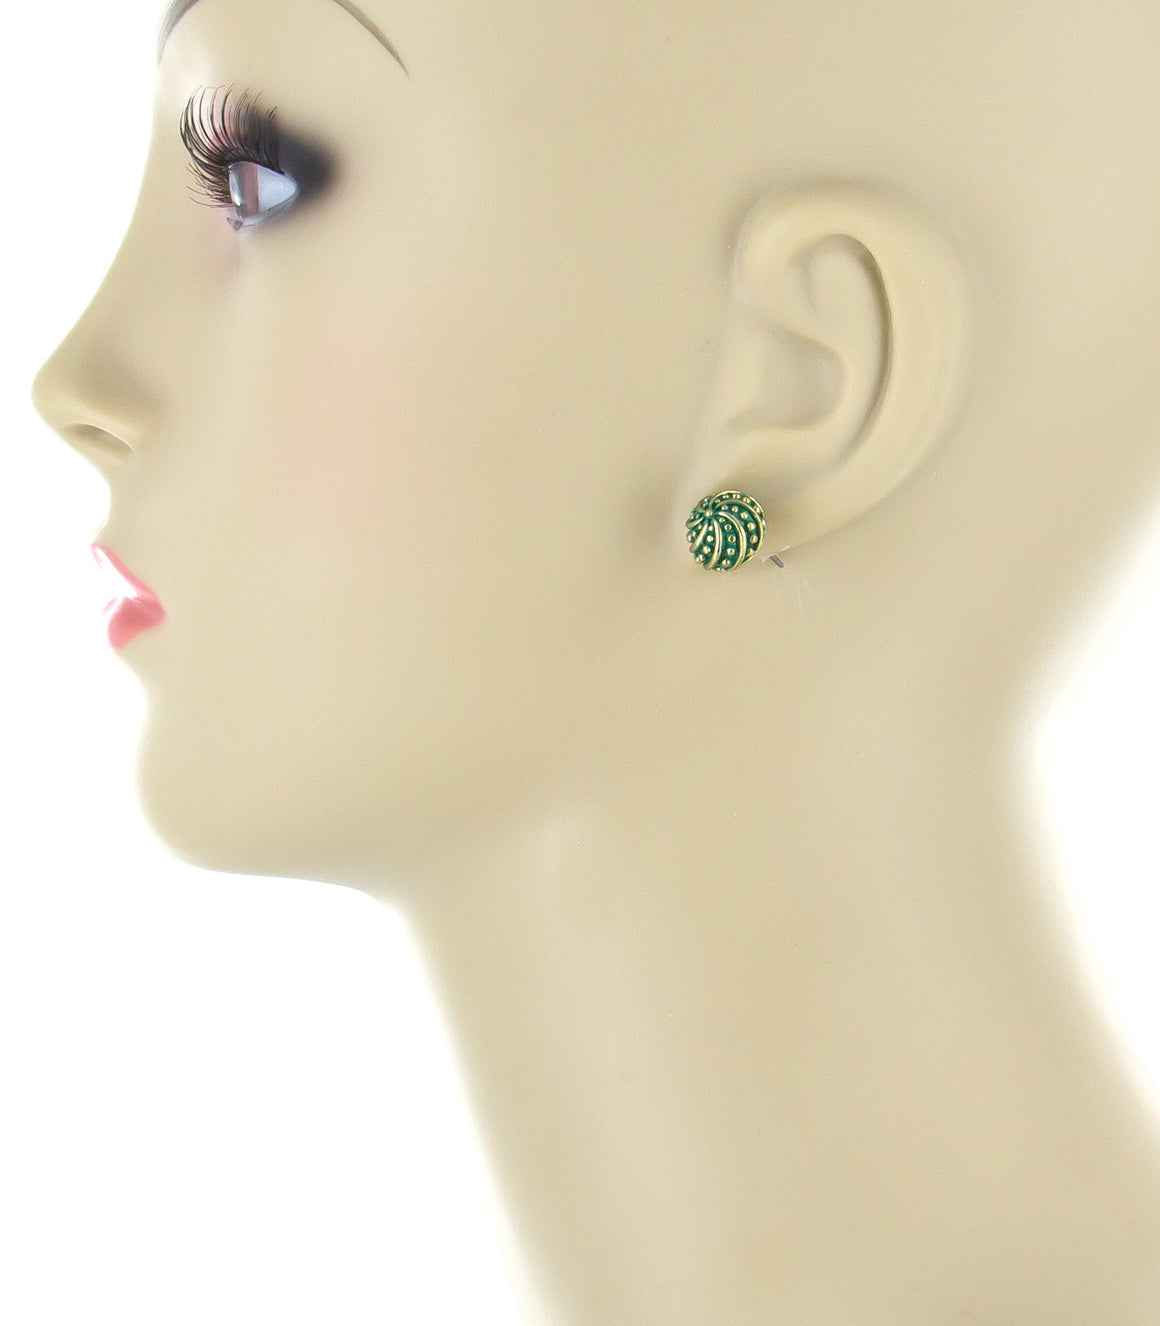 Bright green textured ball Stud Earrings.